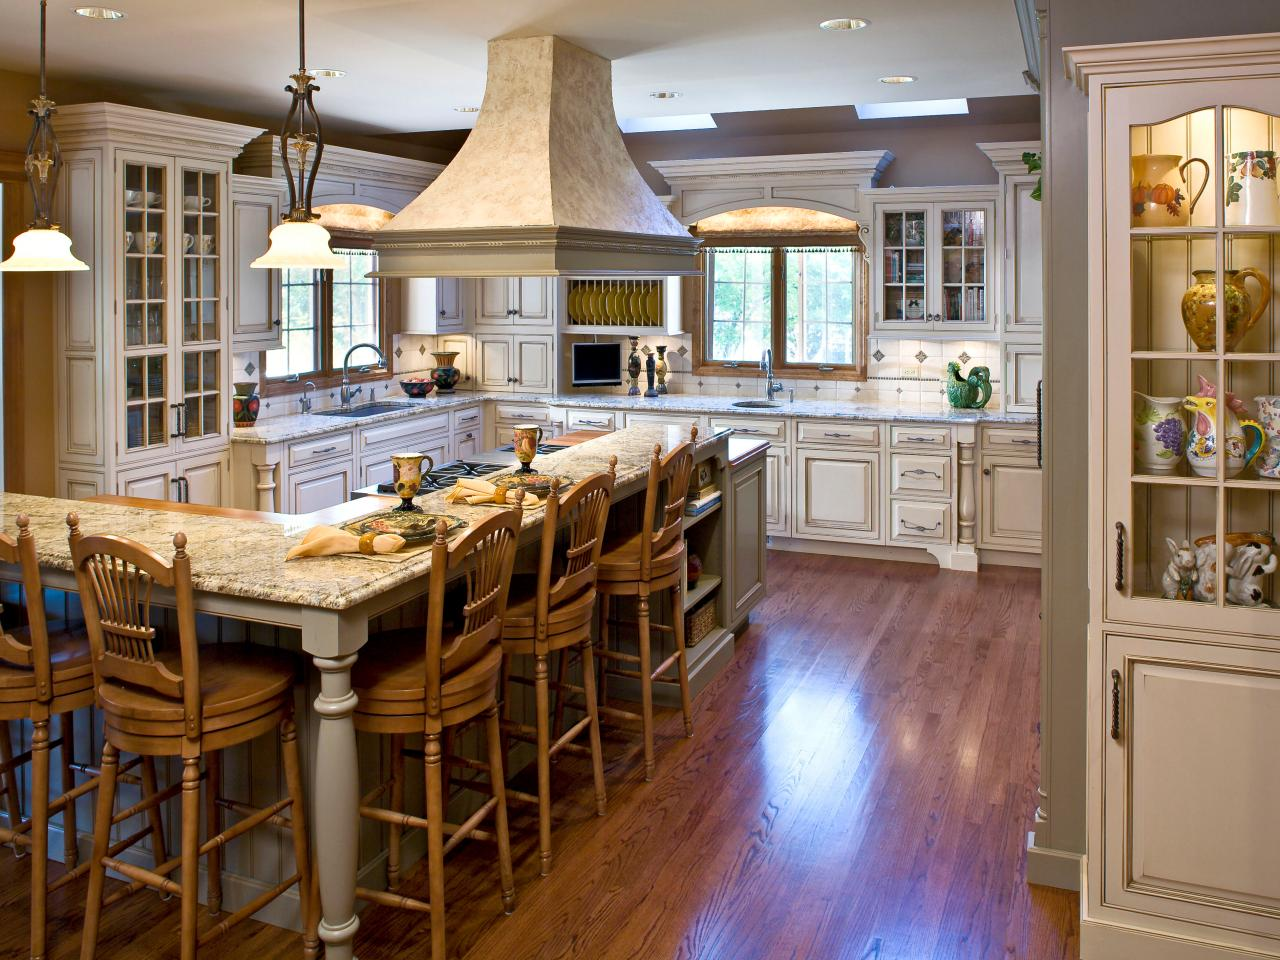 Wide Range Hood above Classic Kitchen Island Table and Old Fashioned Stools inside Elegant Kitchen